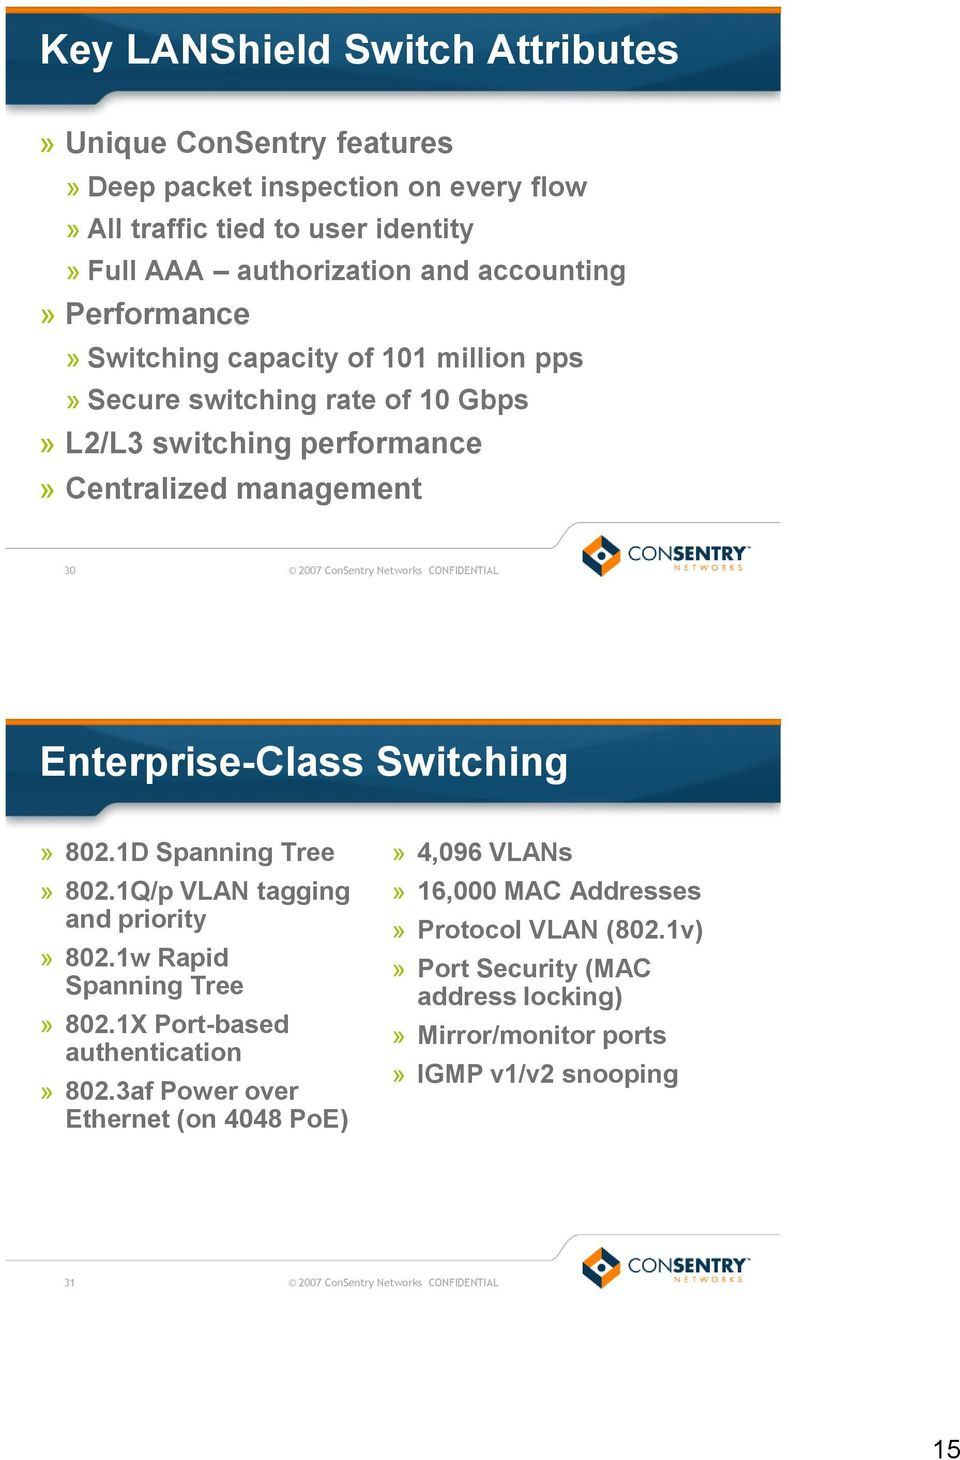 Enterprise-Class Switching» 802.1D Spanning Tree» 802.1Q/p VLAN tagging and priority» 802.1w Rapid Spanning Tree» 802.1X Port-based authentication» 802.